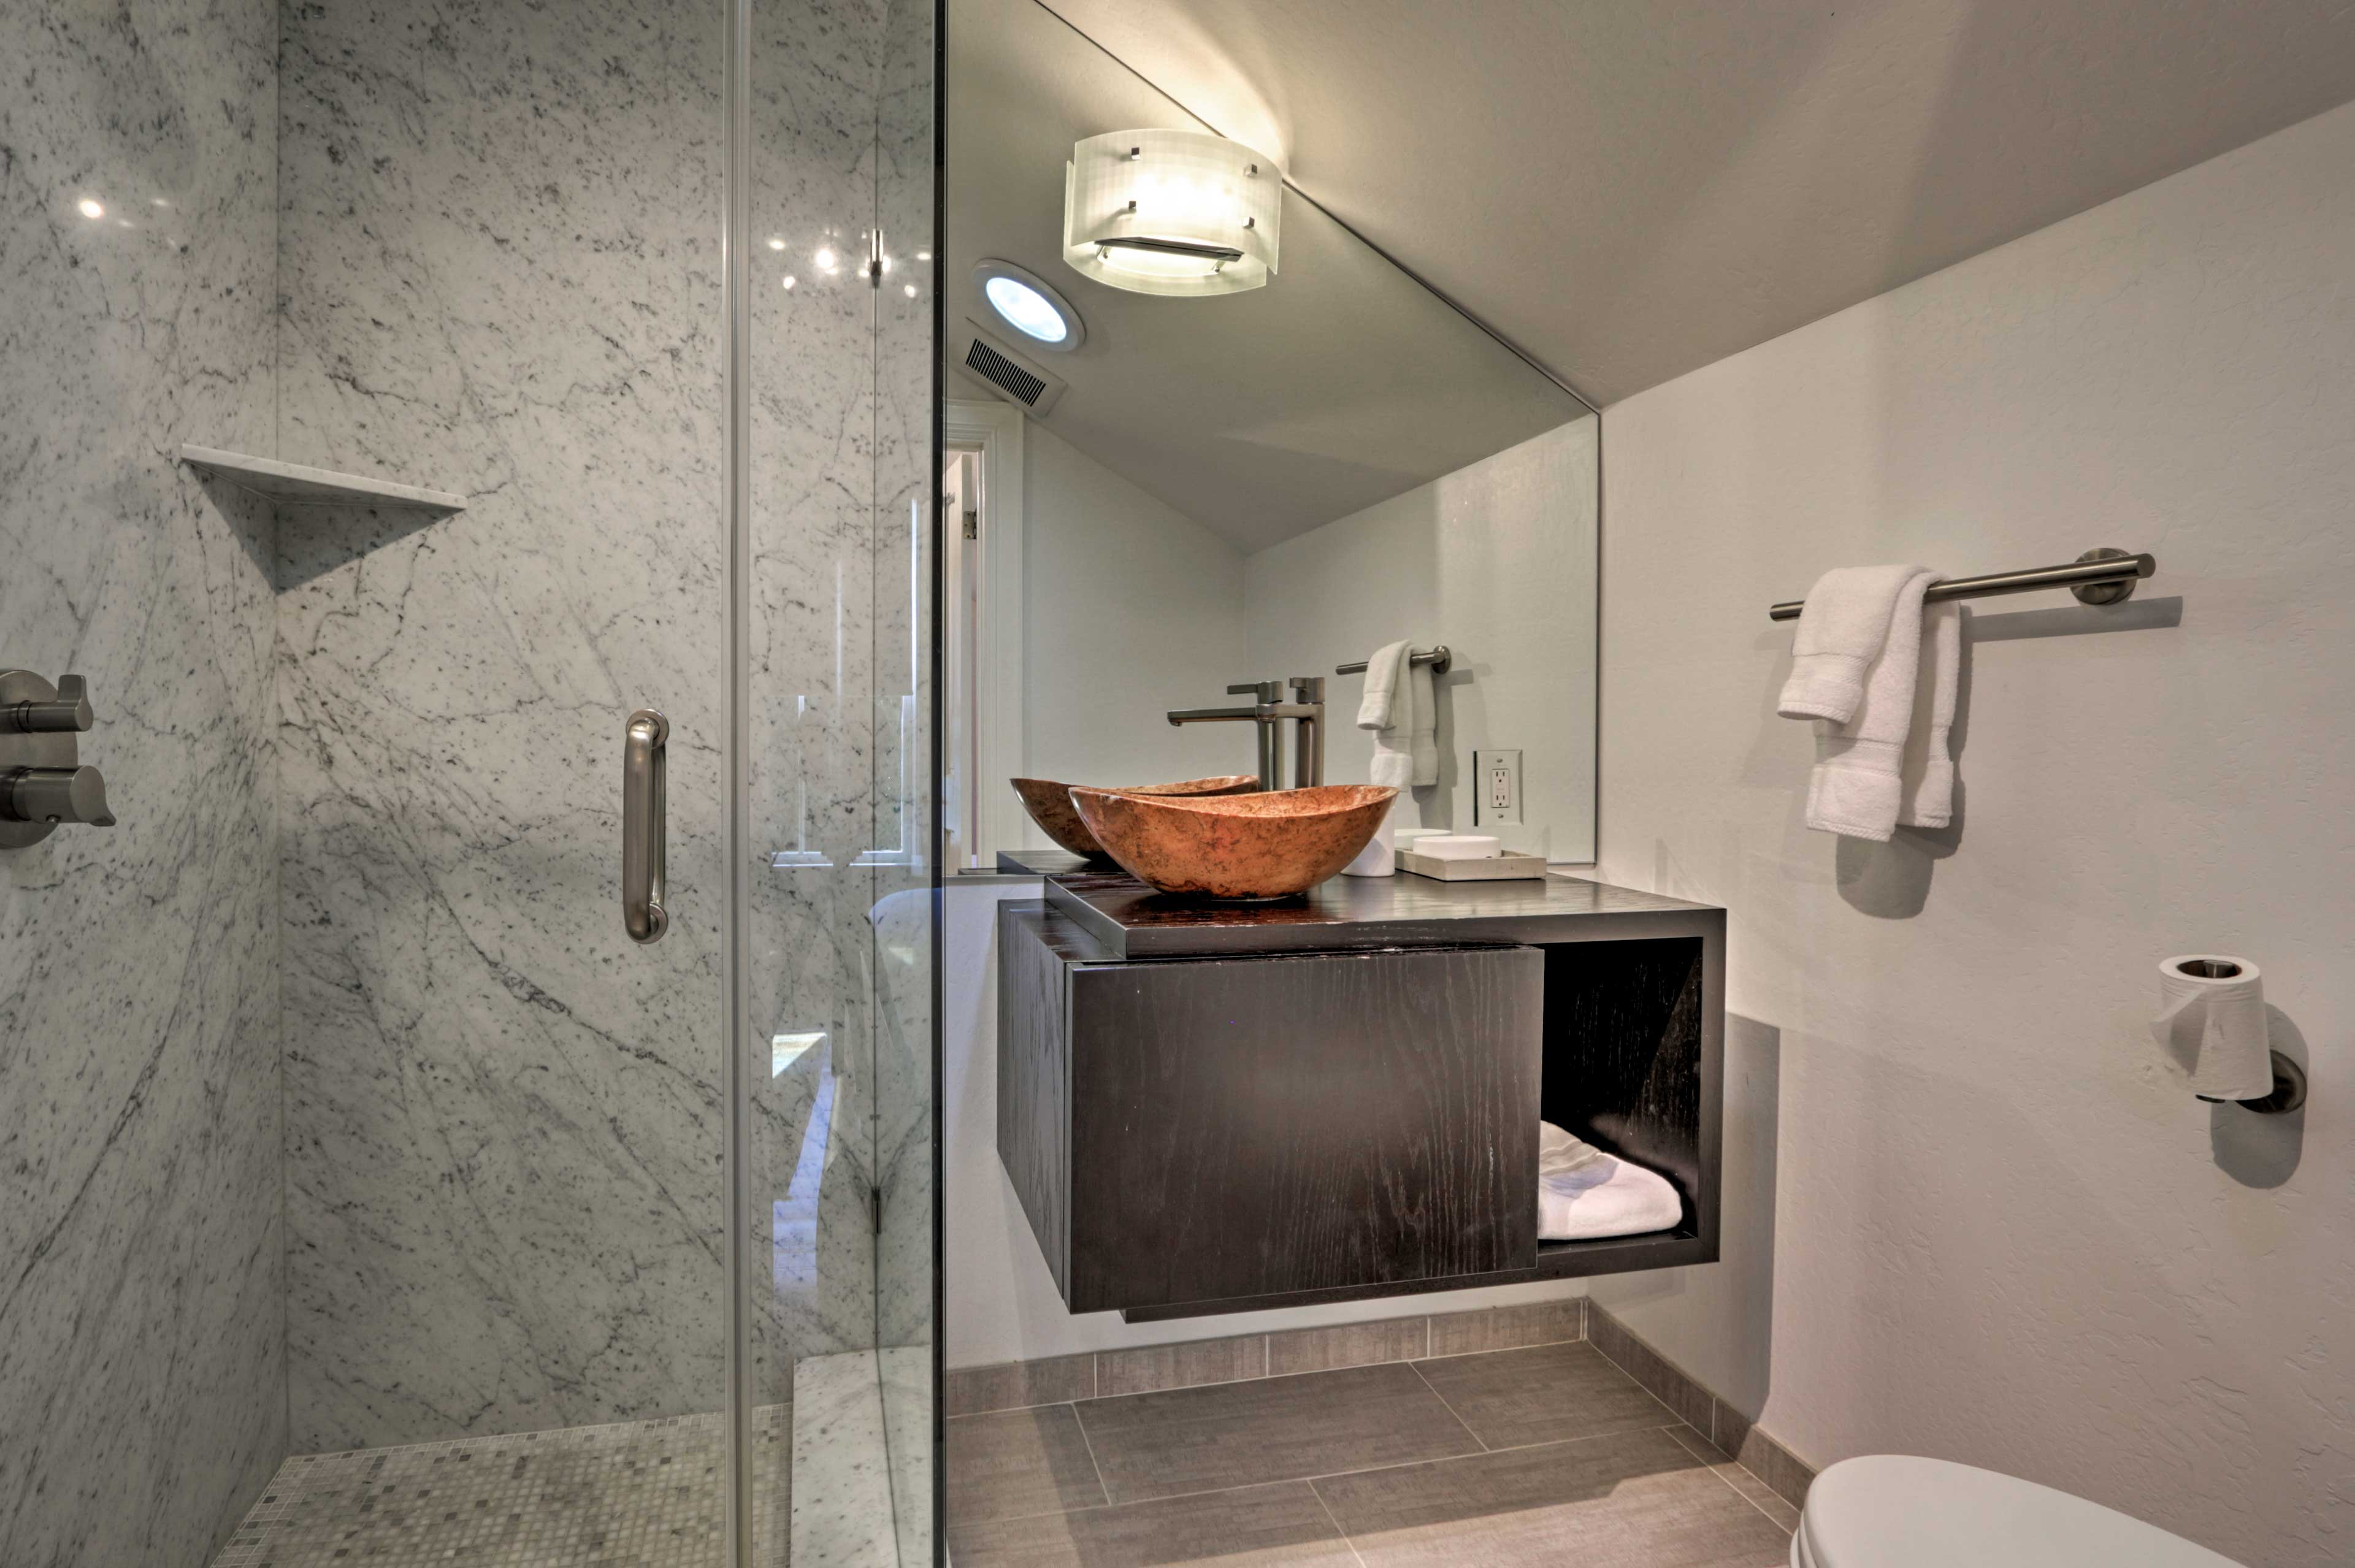 Shower in style in these lavish bathrooms!